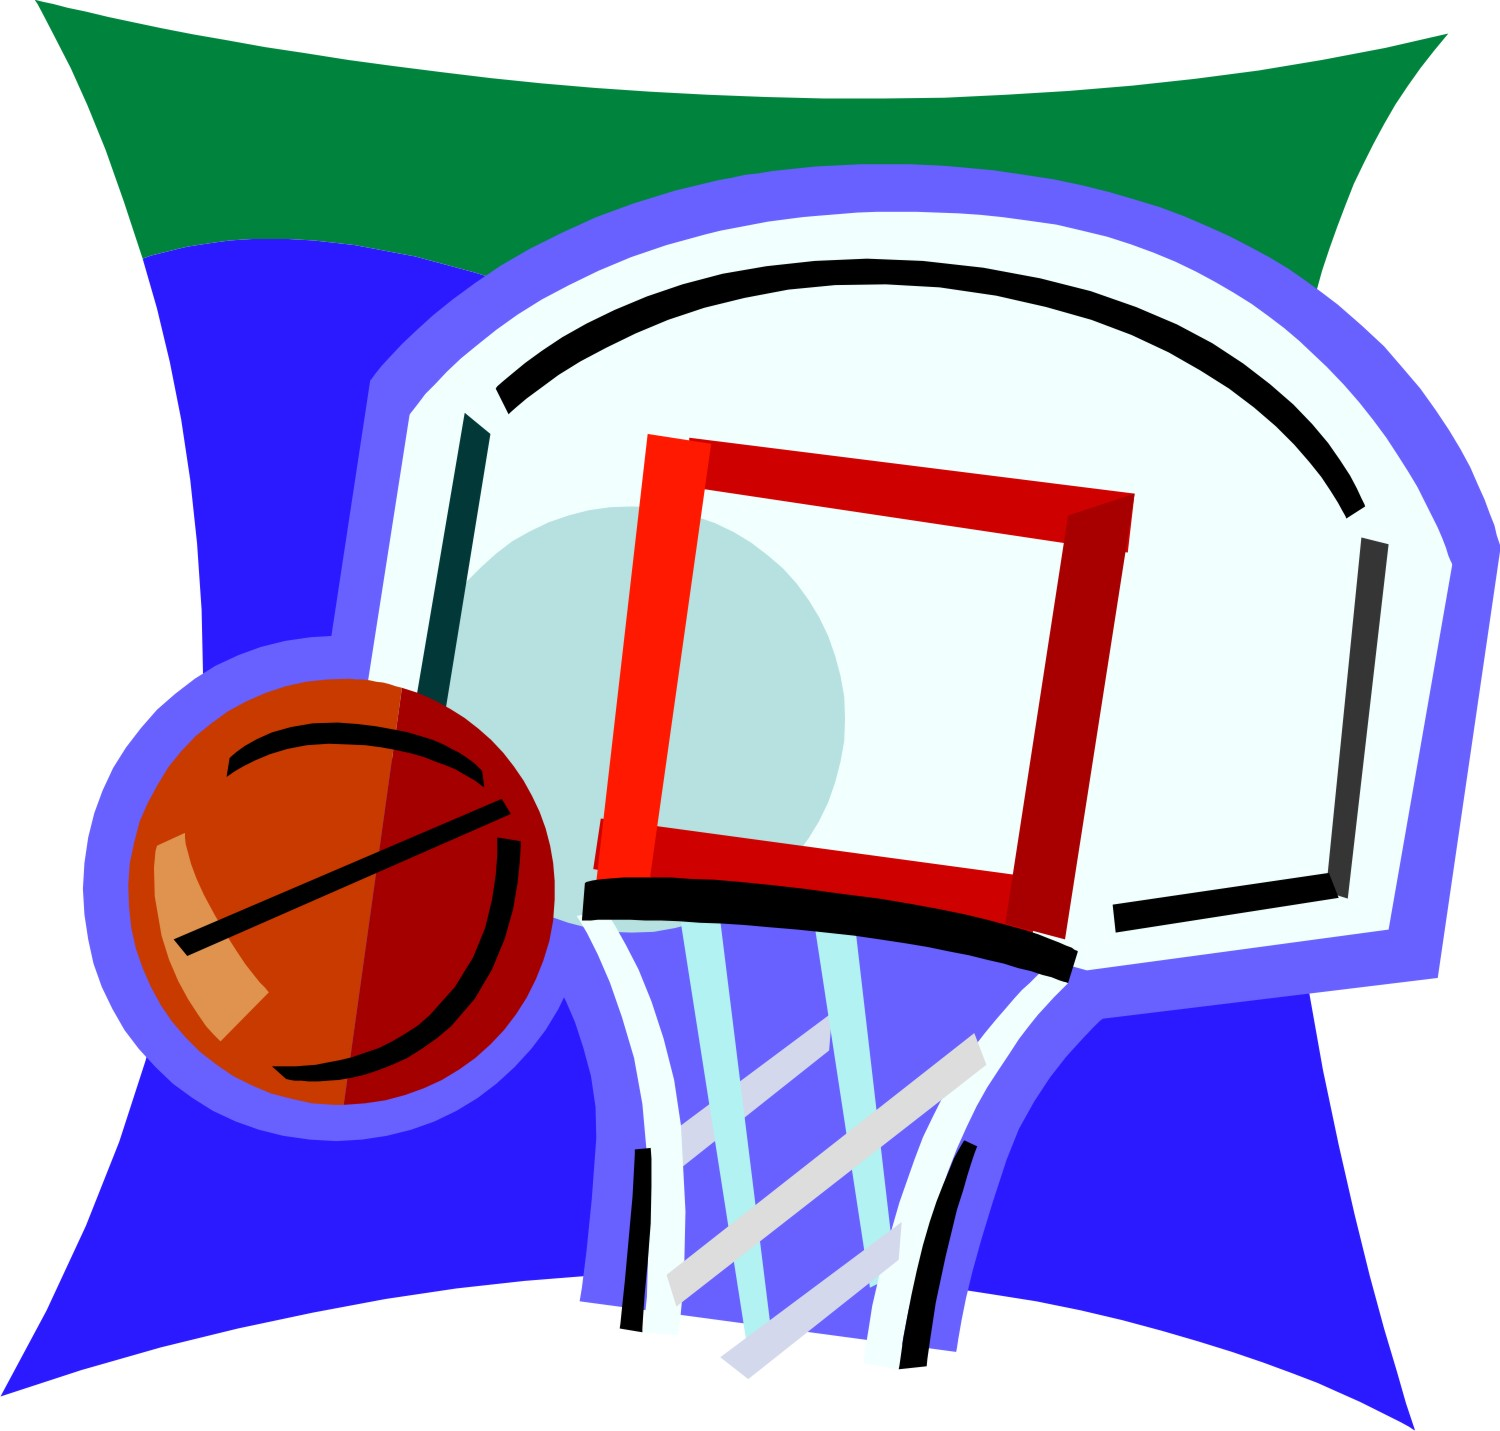 1500x1431 Basketball Hoop Hoop Basketball Ring Net Clipart 2